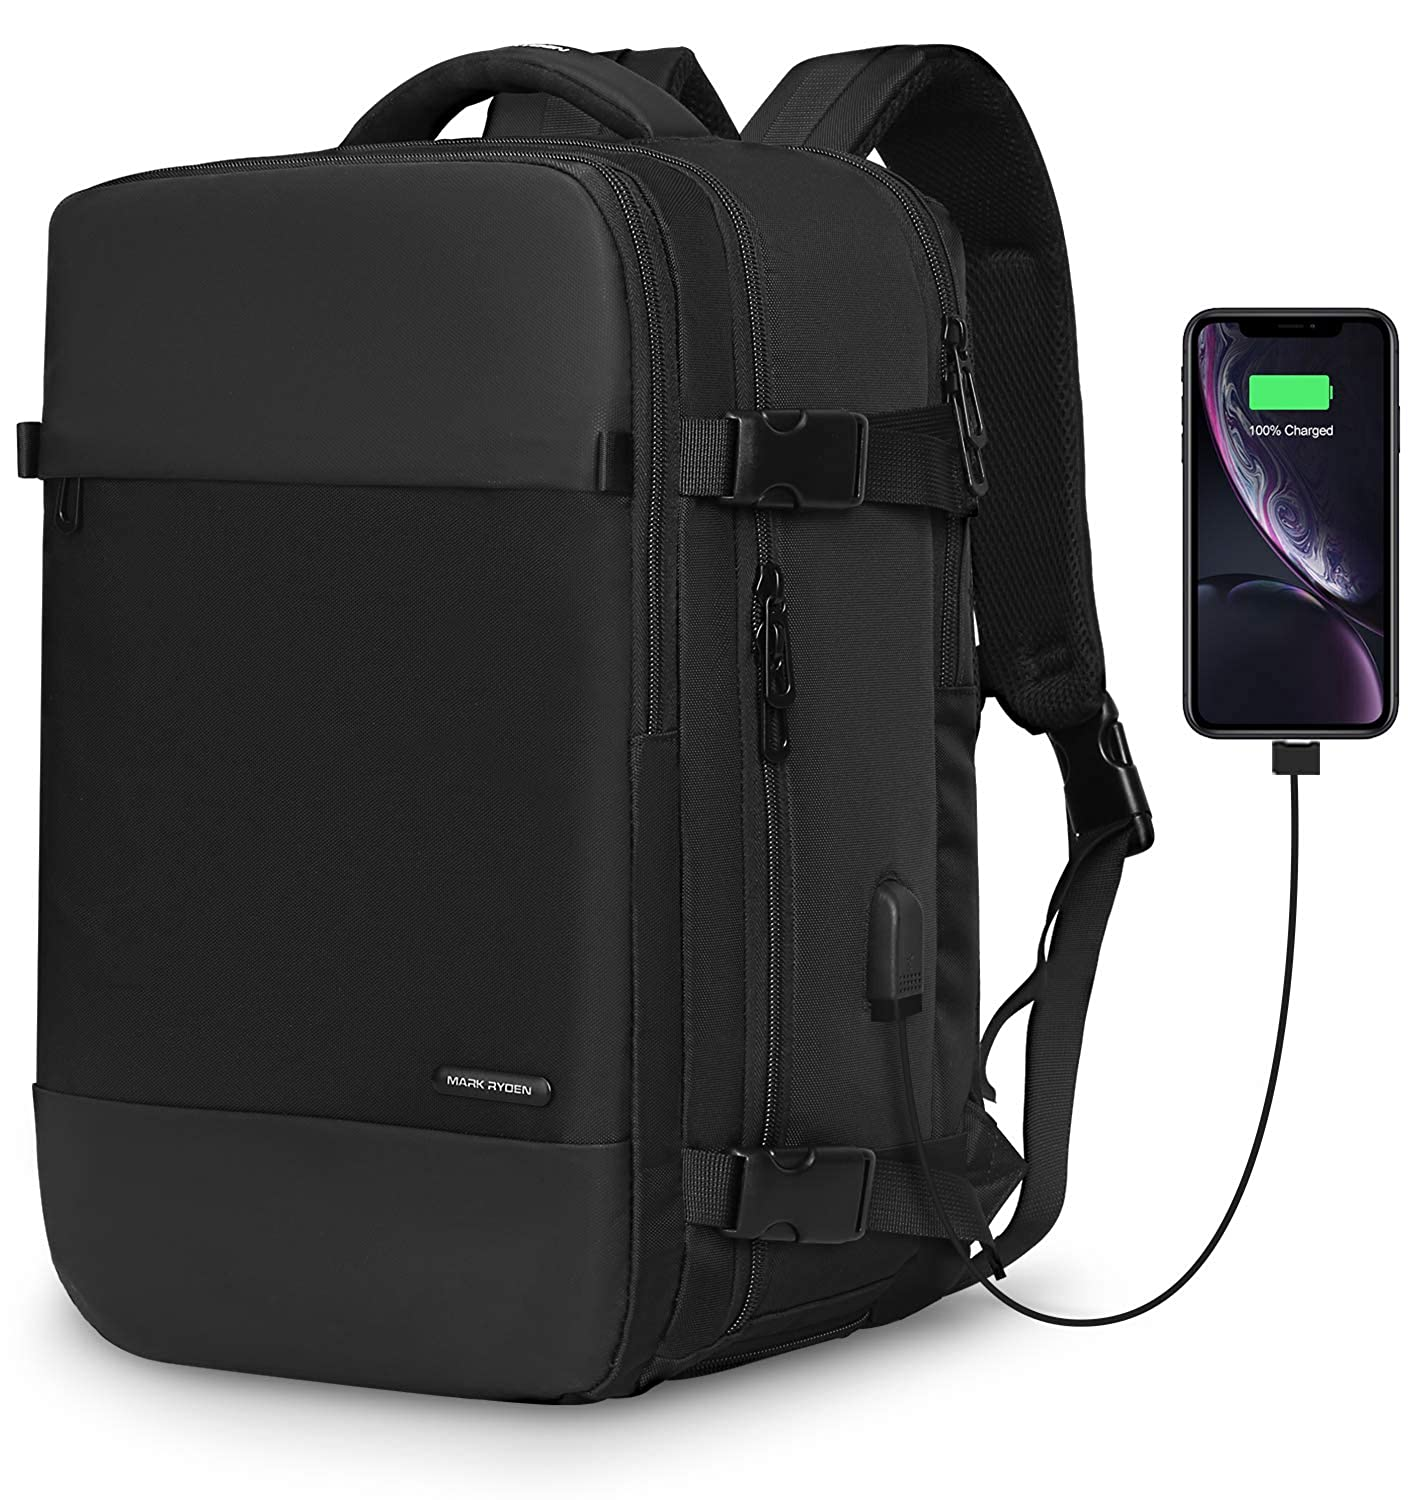 MARK RYDEN laptop Backpack carry on Bag with shoe compartment USB Charging Port fit 15.6 Laptop